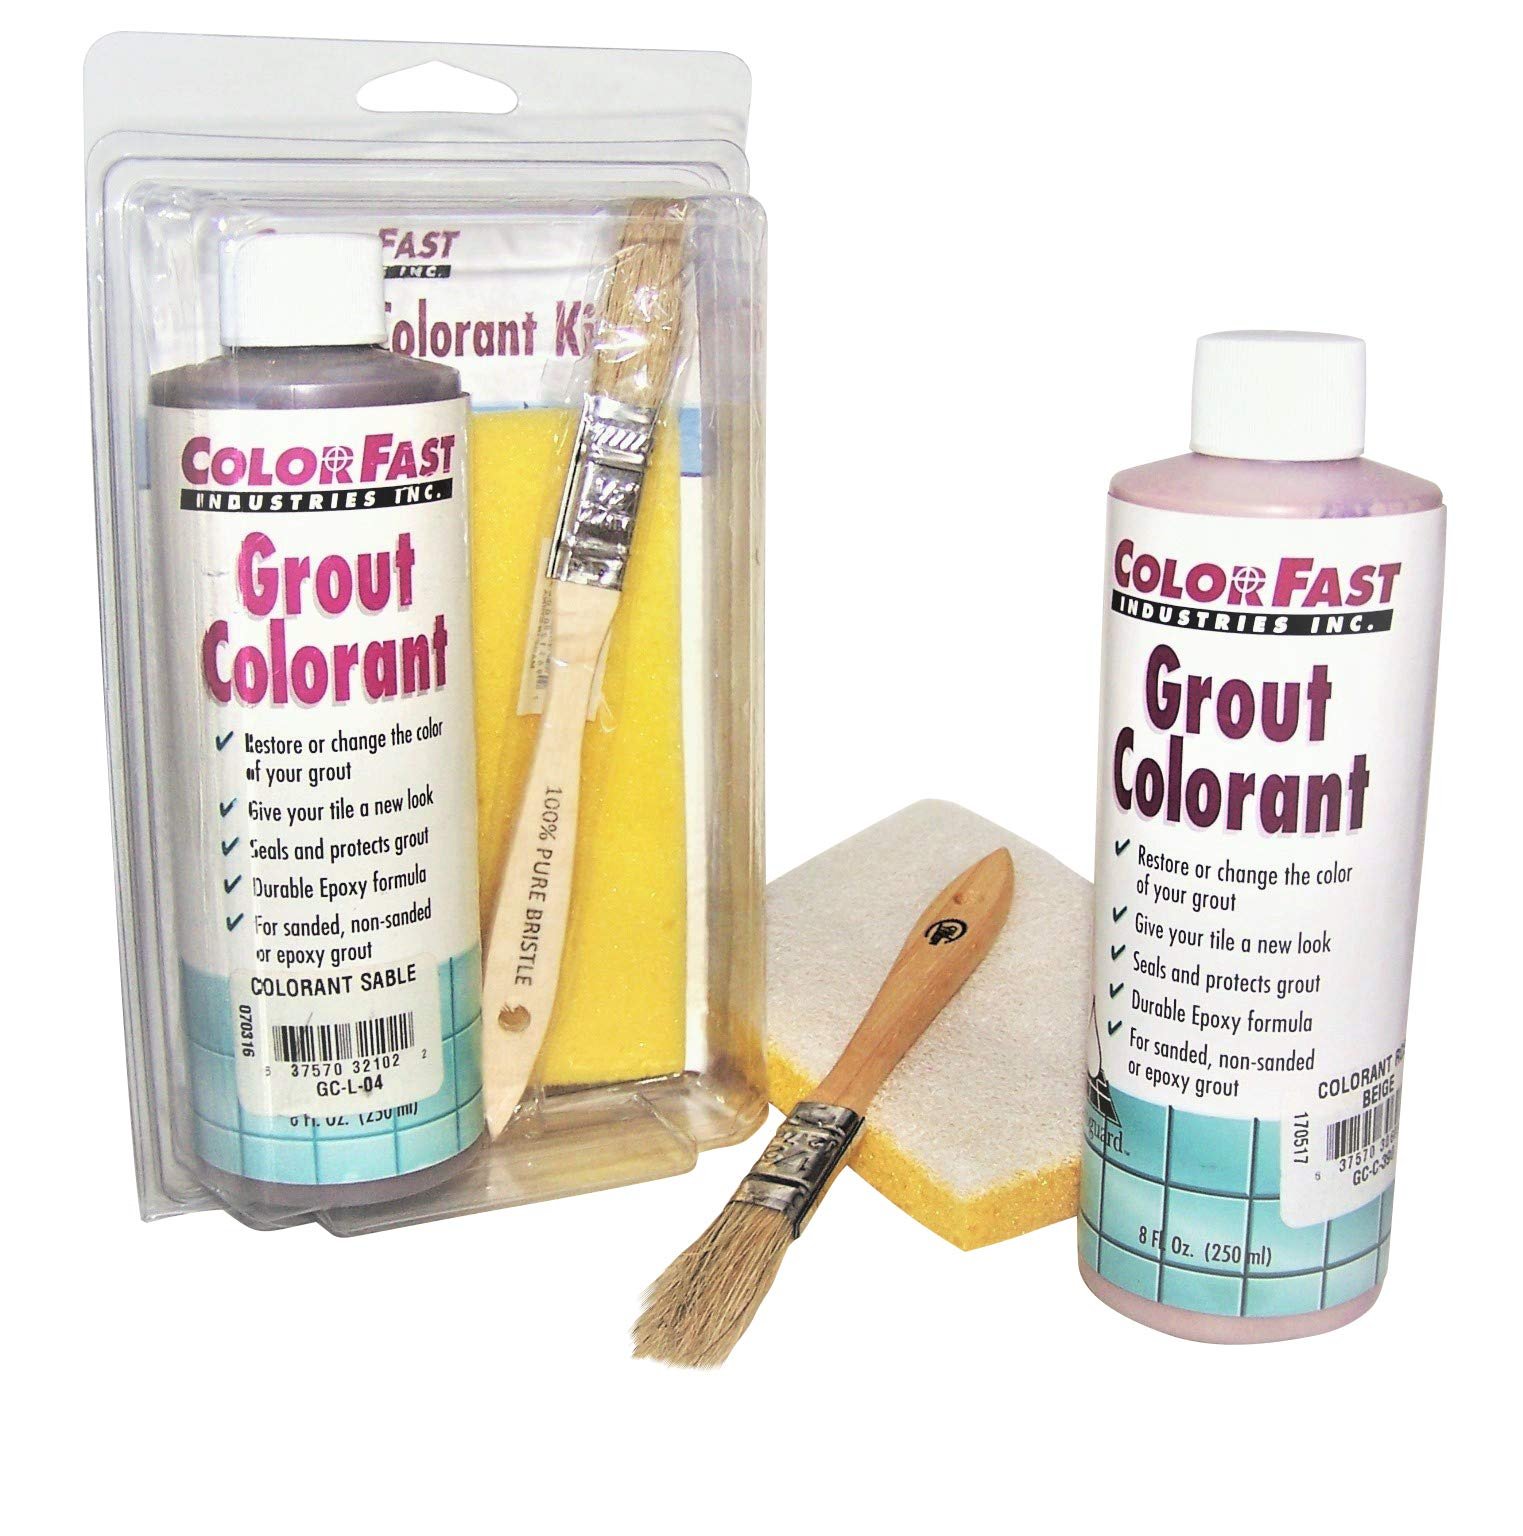 Colorfast Grout Colorant Kit- Butter Cream #017 (Custom GP color)